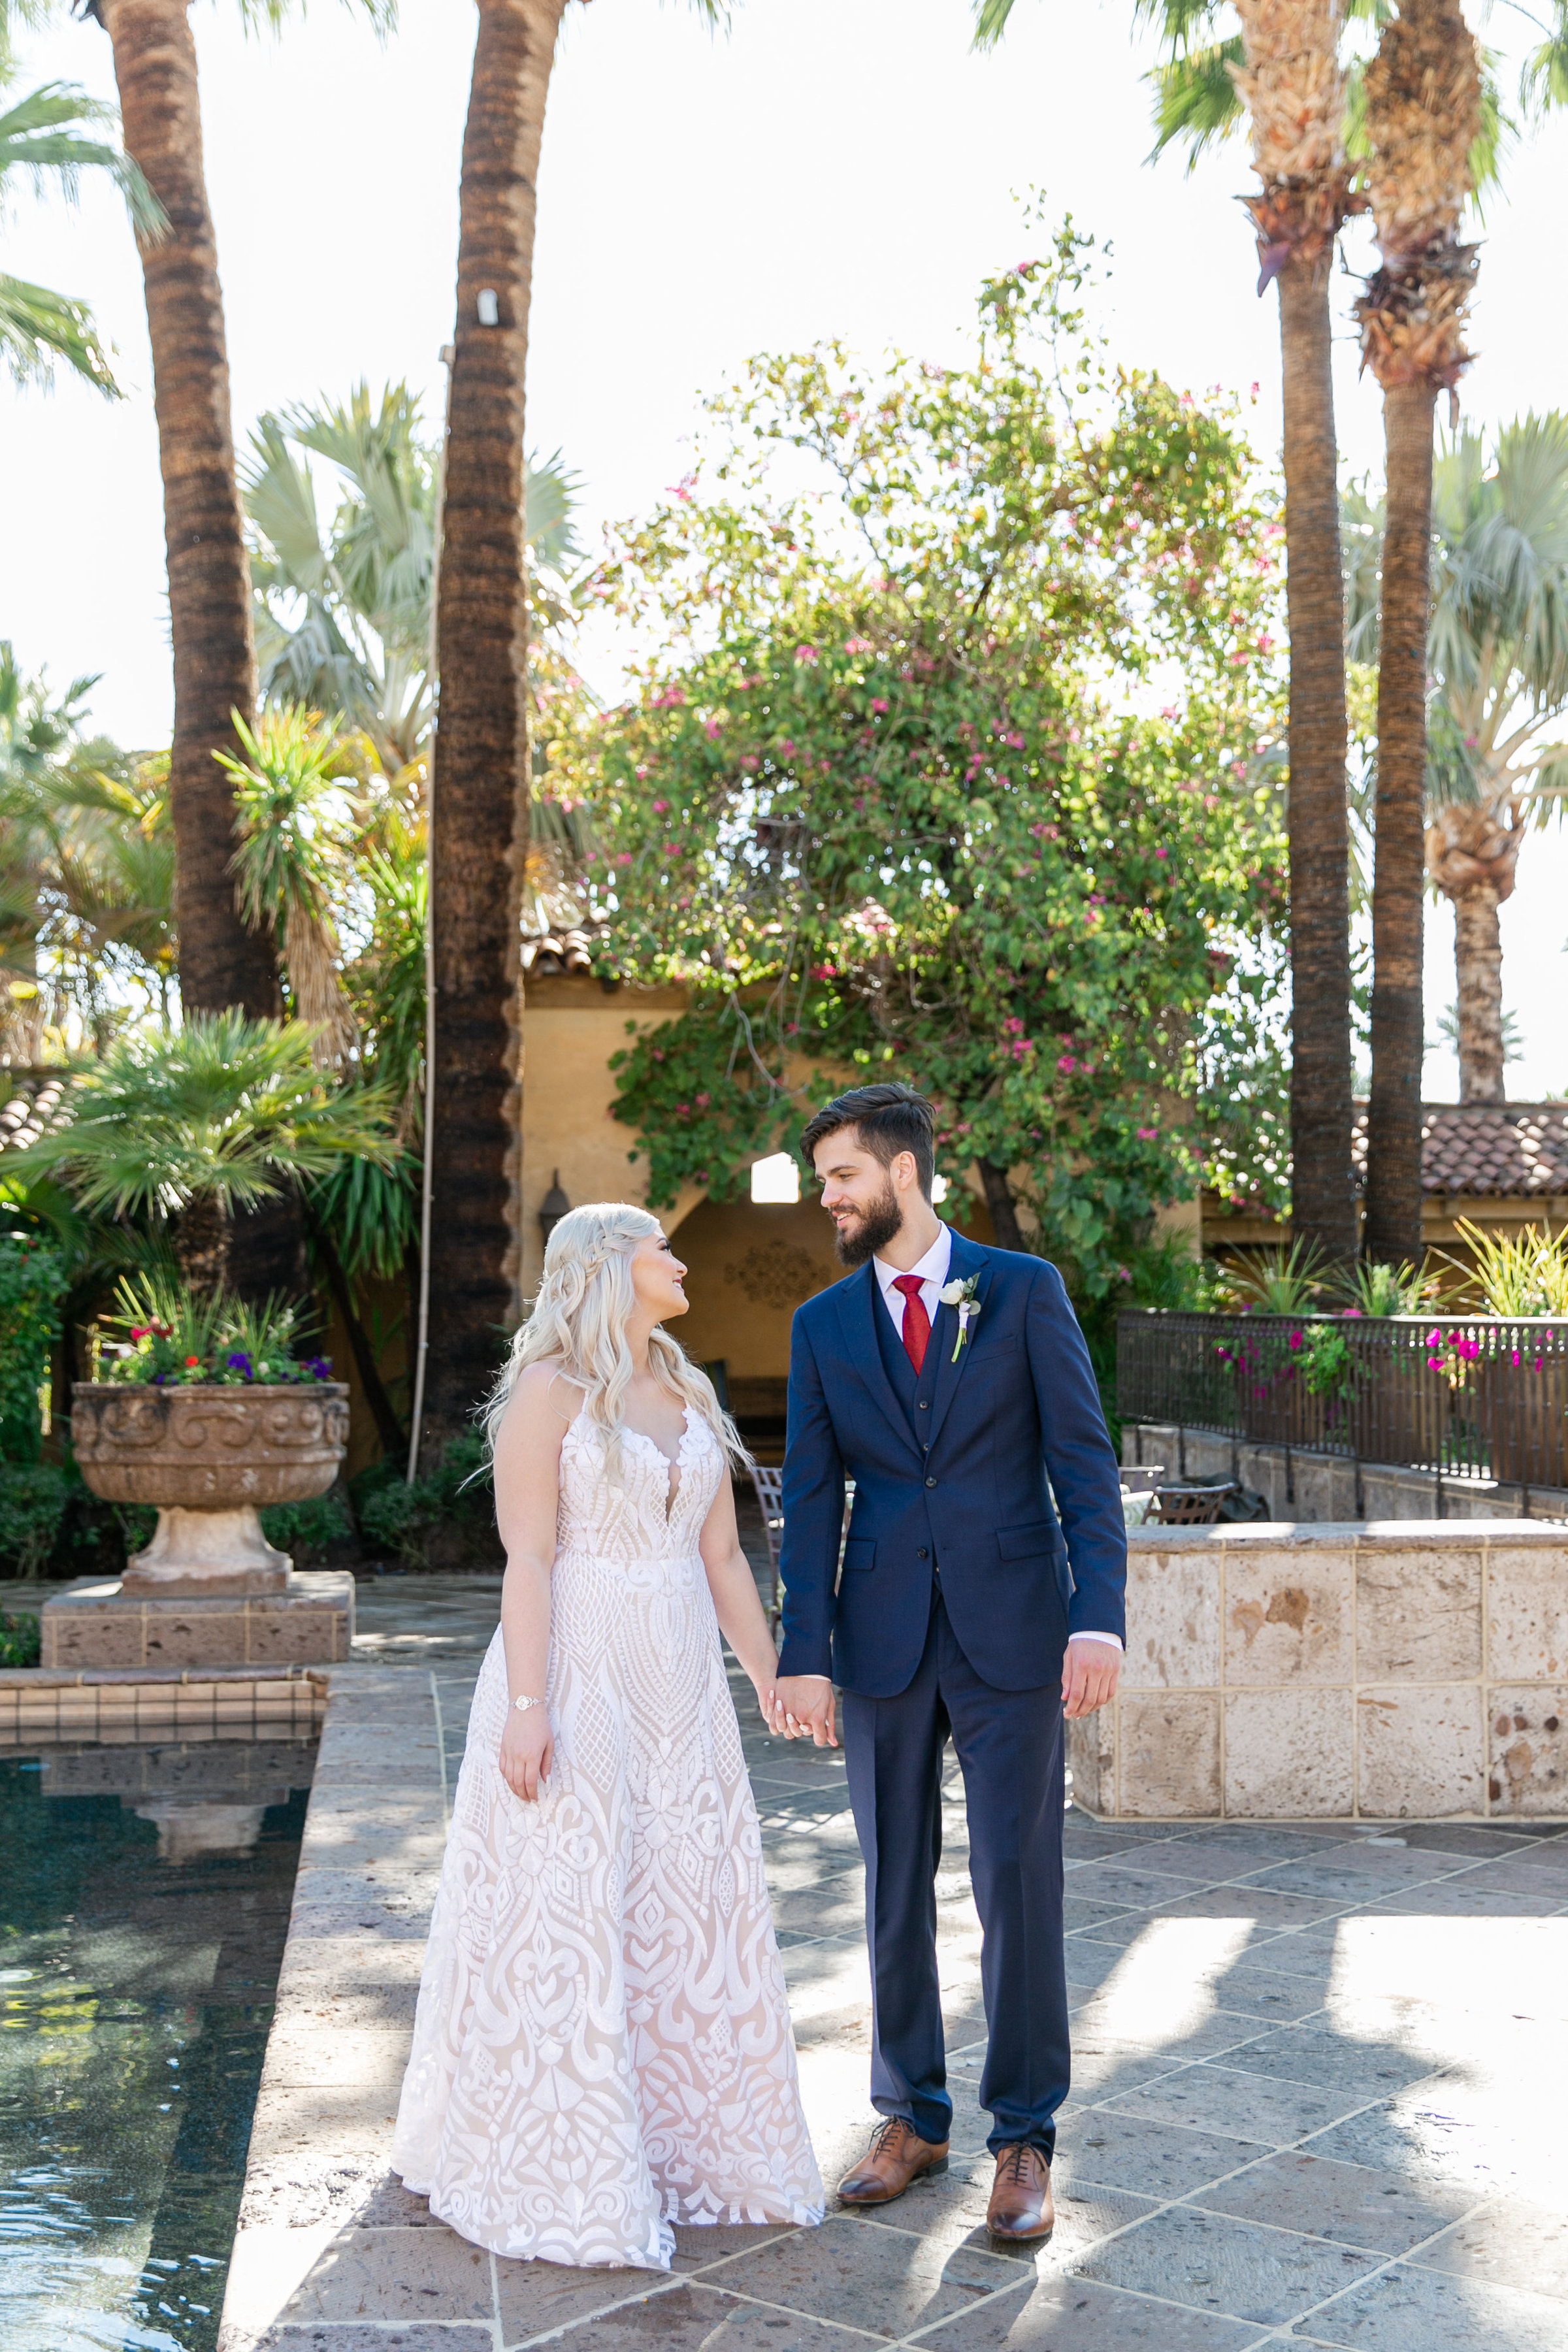 Karlie Colleen Photography - The Royal Palms Wedding - Some Like It Classic - Alex & Sam-136